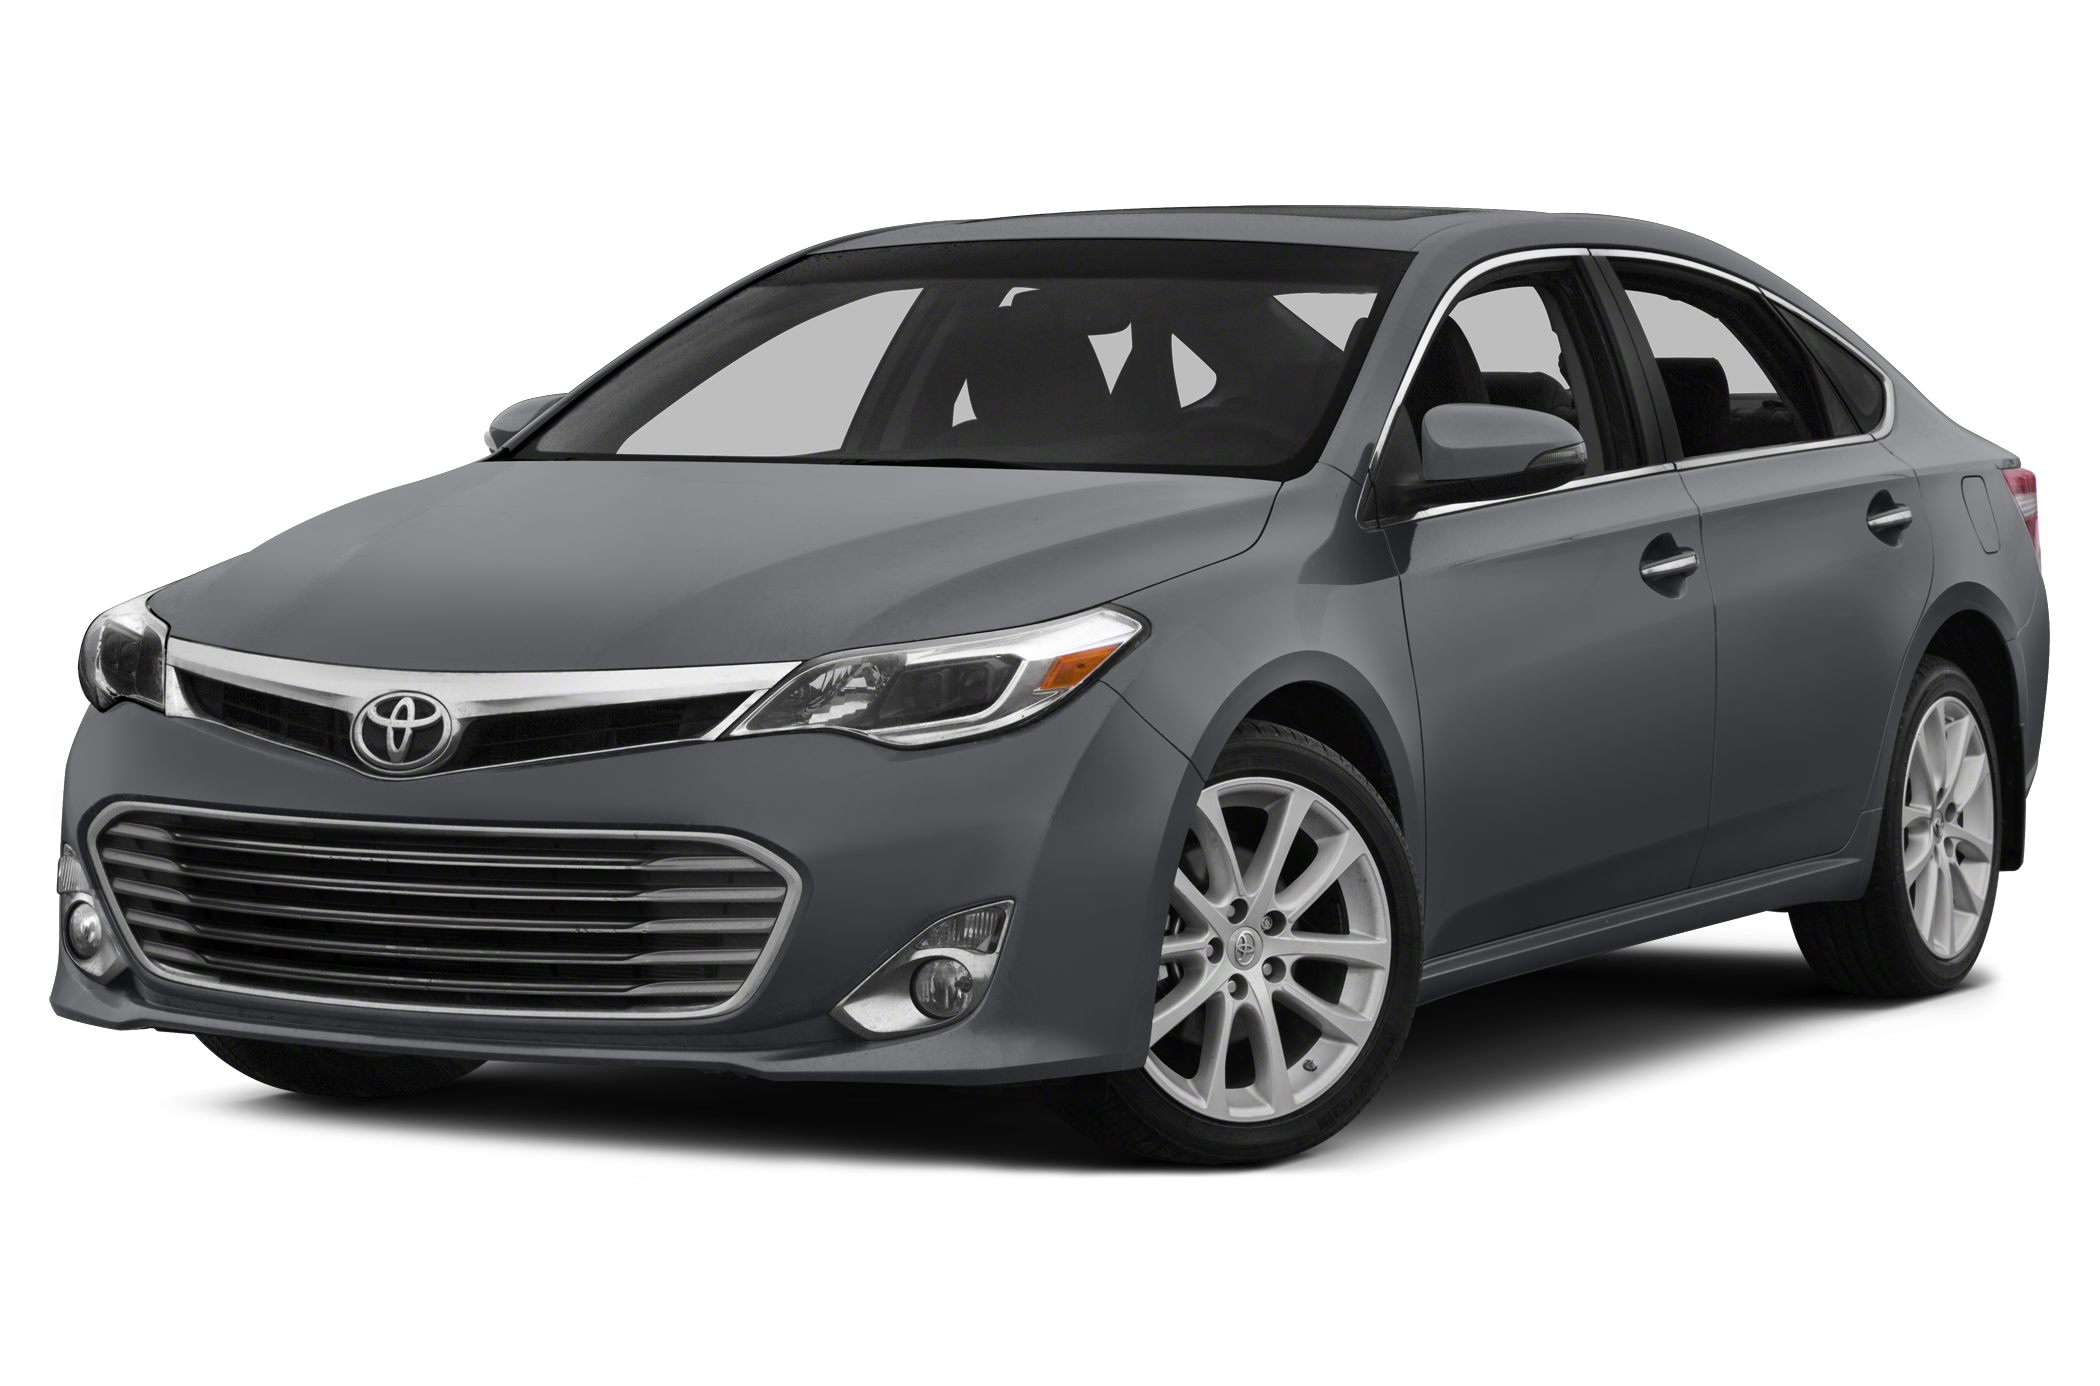 2013 Toyota Avalon XLE Touring LOW MILES - 32263 XLE Touring trim NAV Heated Leather Seats Su